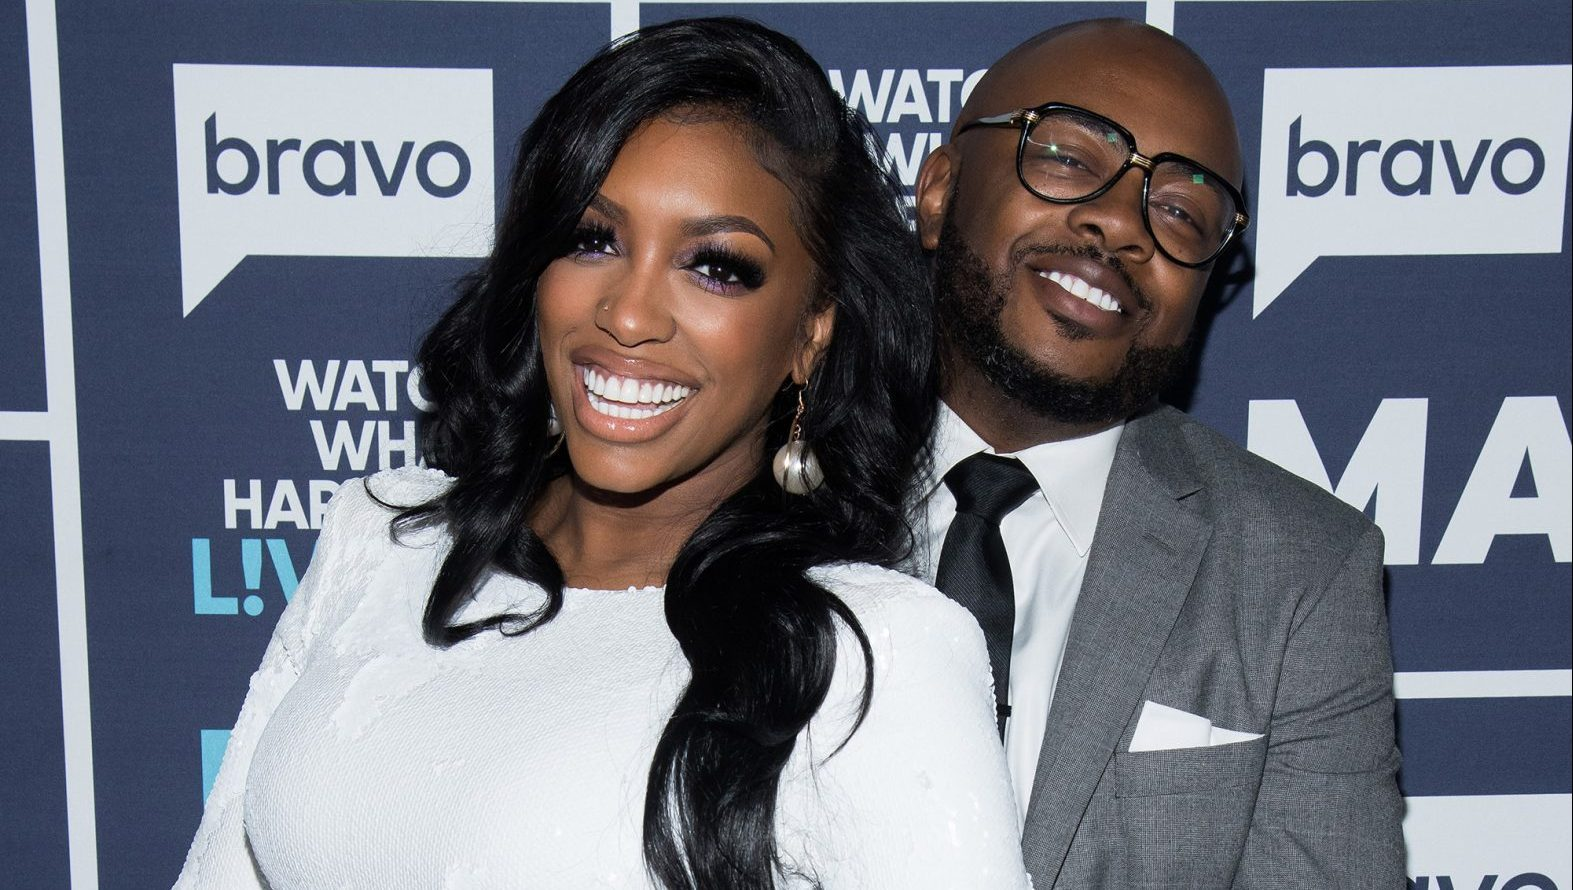 Porsha Williams Shares A Motivational Message To Her Fans